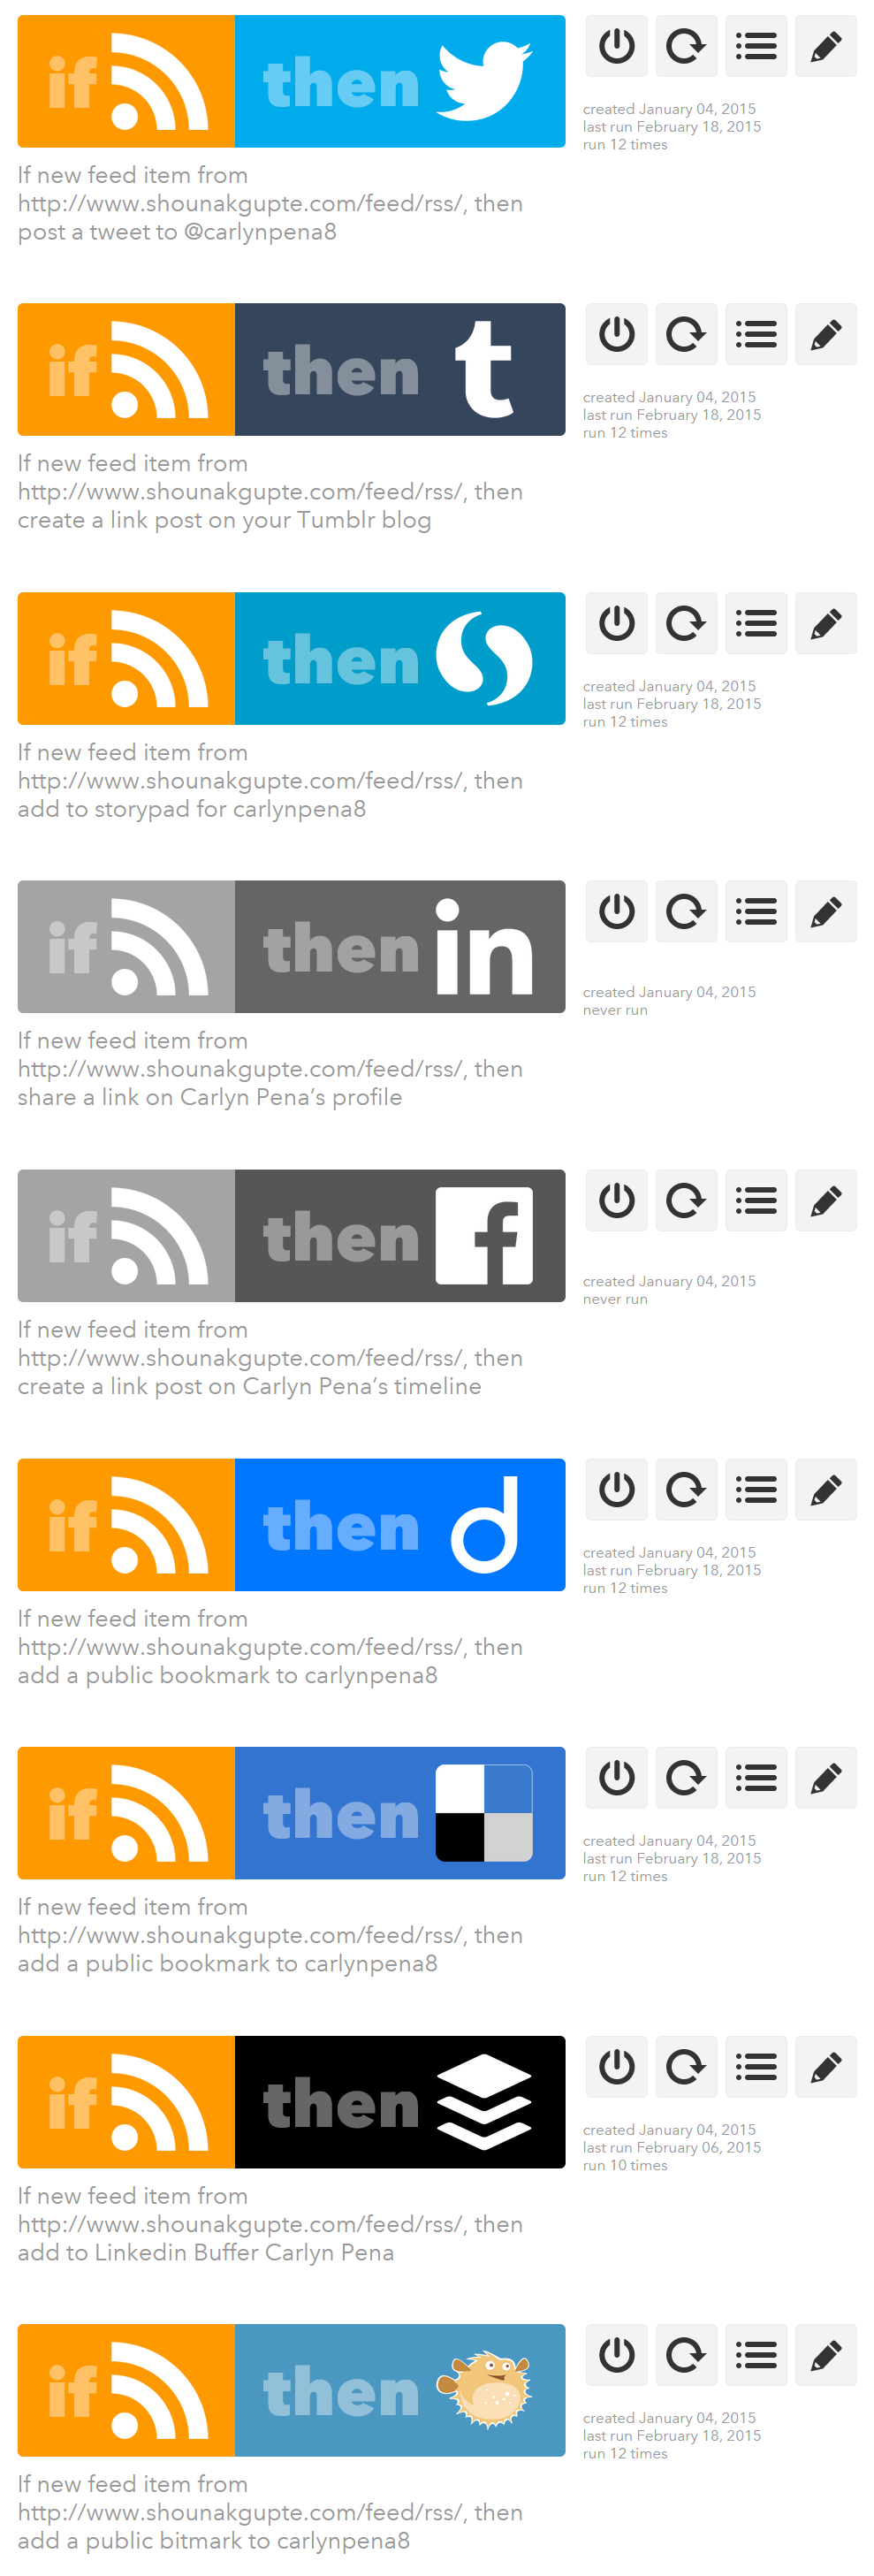 IFTTT - Free alternative to onlywire and syndwire